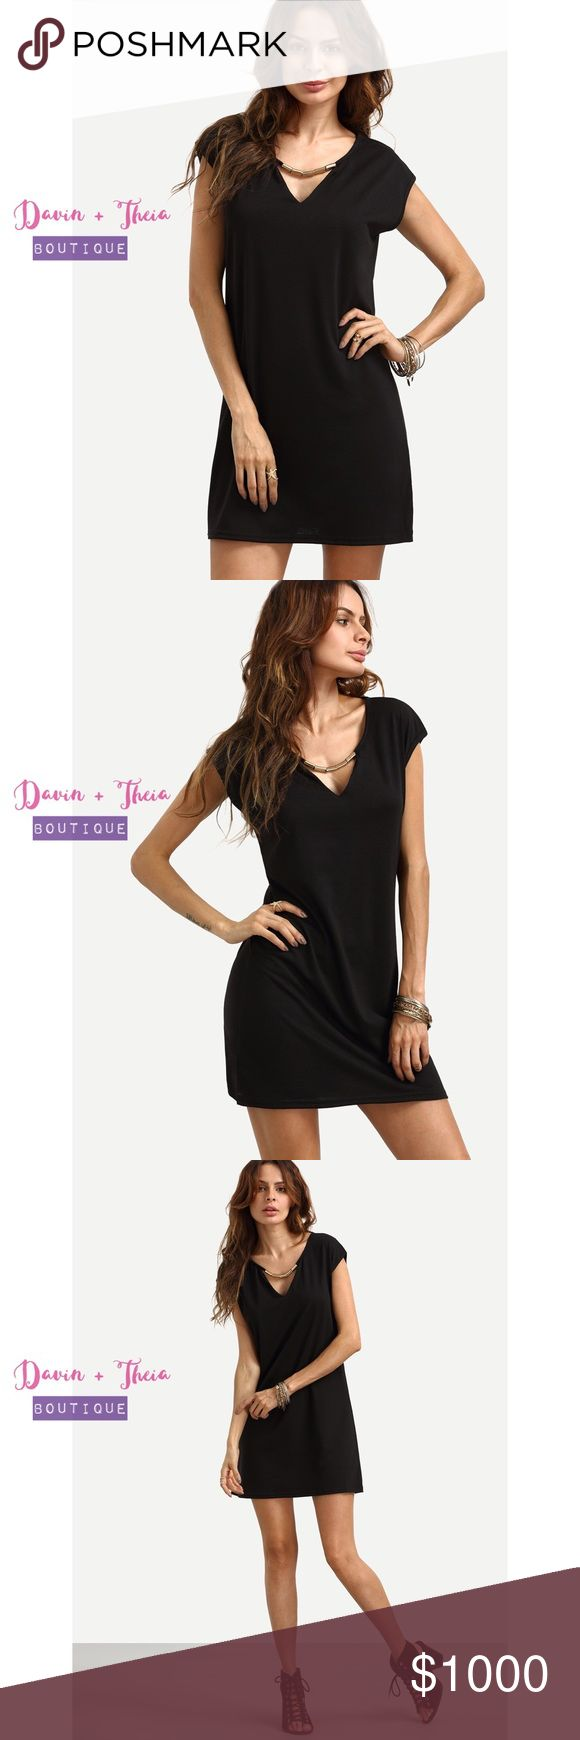 """SALE‼️ Black V-Neck Shift Dress Casual style Black V Neck Shift Dress. Material is cotton blend. Limited quantity, only have 1 for each size.  Please ask questions before purchasing. Submit your offer thru the """"Offer"""" button NO Price discussion in the comment NO Lowballing NO Trades Davin+Theia Dresses"""